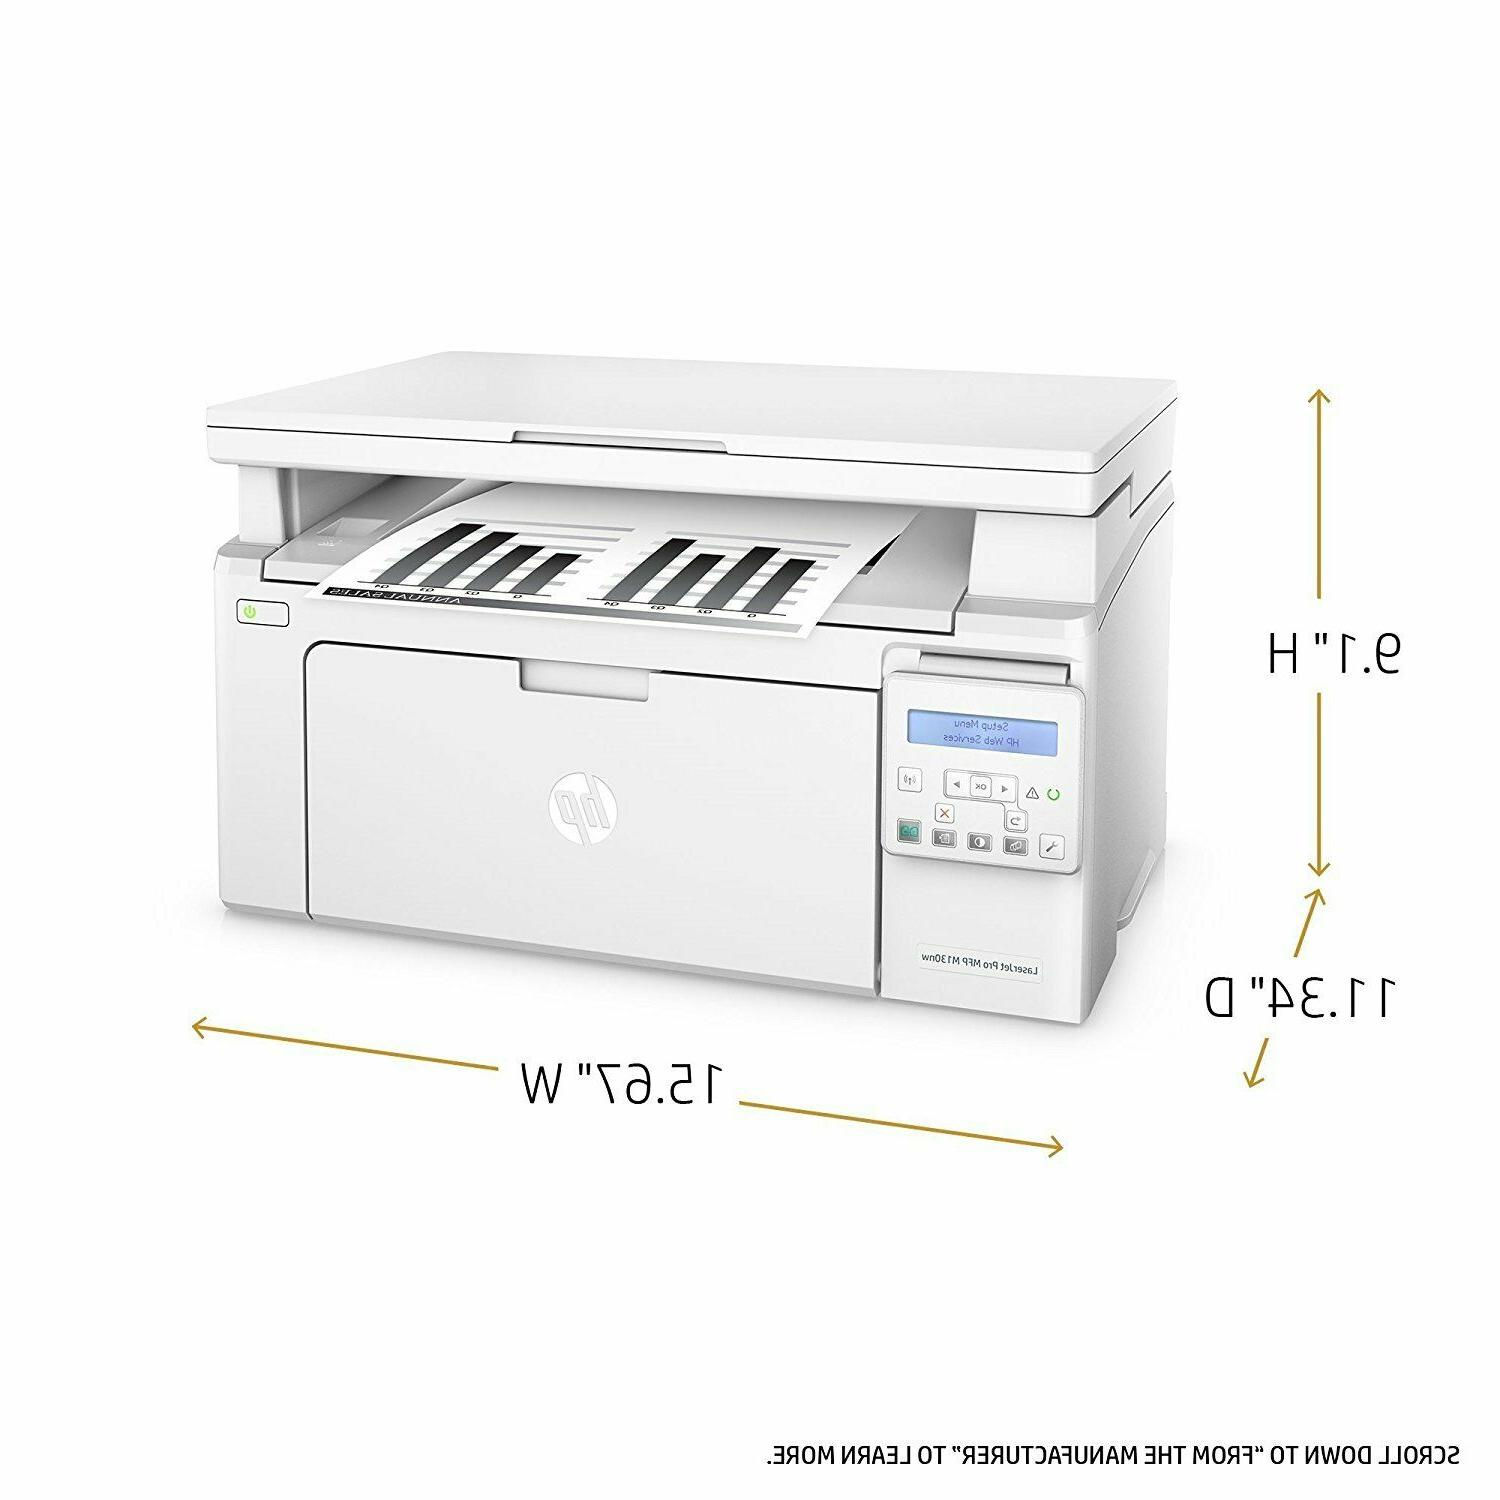 Brand new HP LaserJet Pro M130nw All-in-One Laser Printer